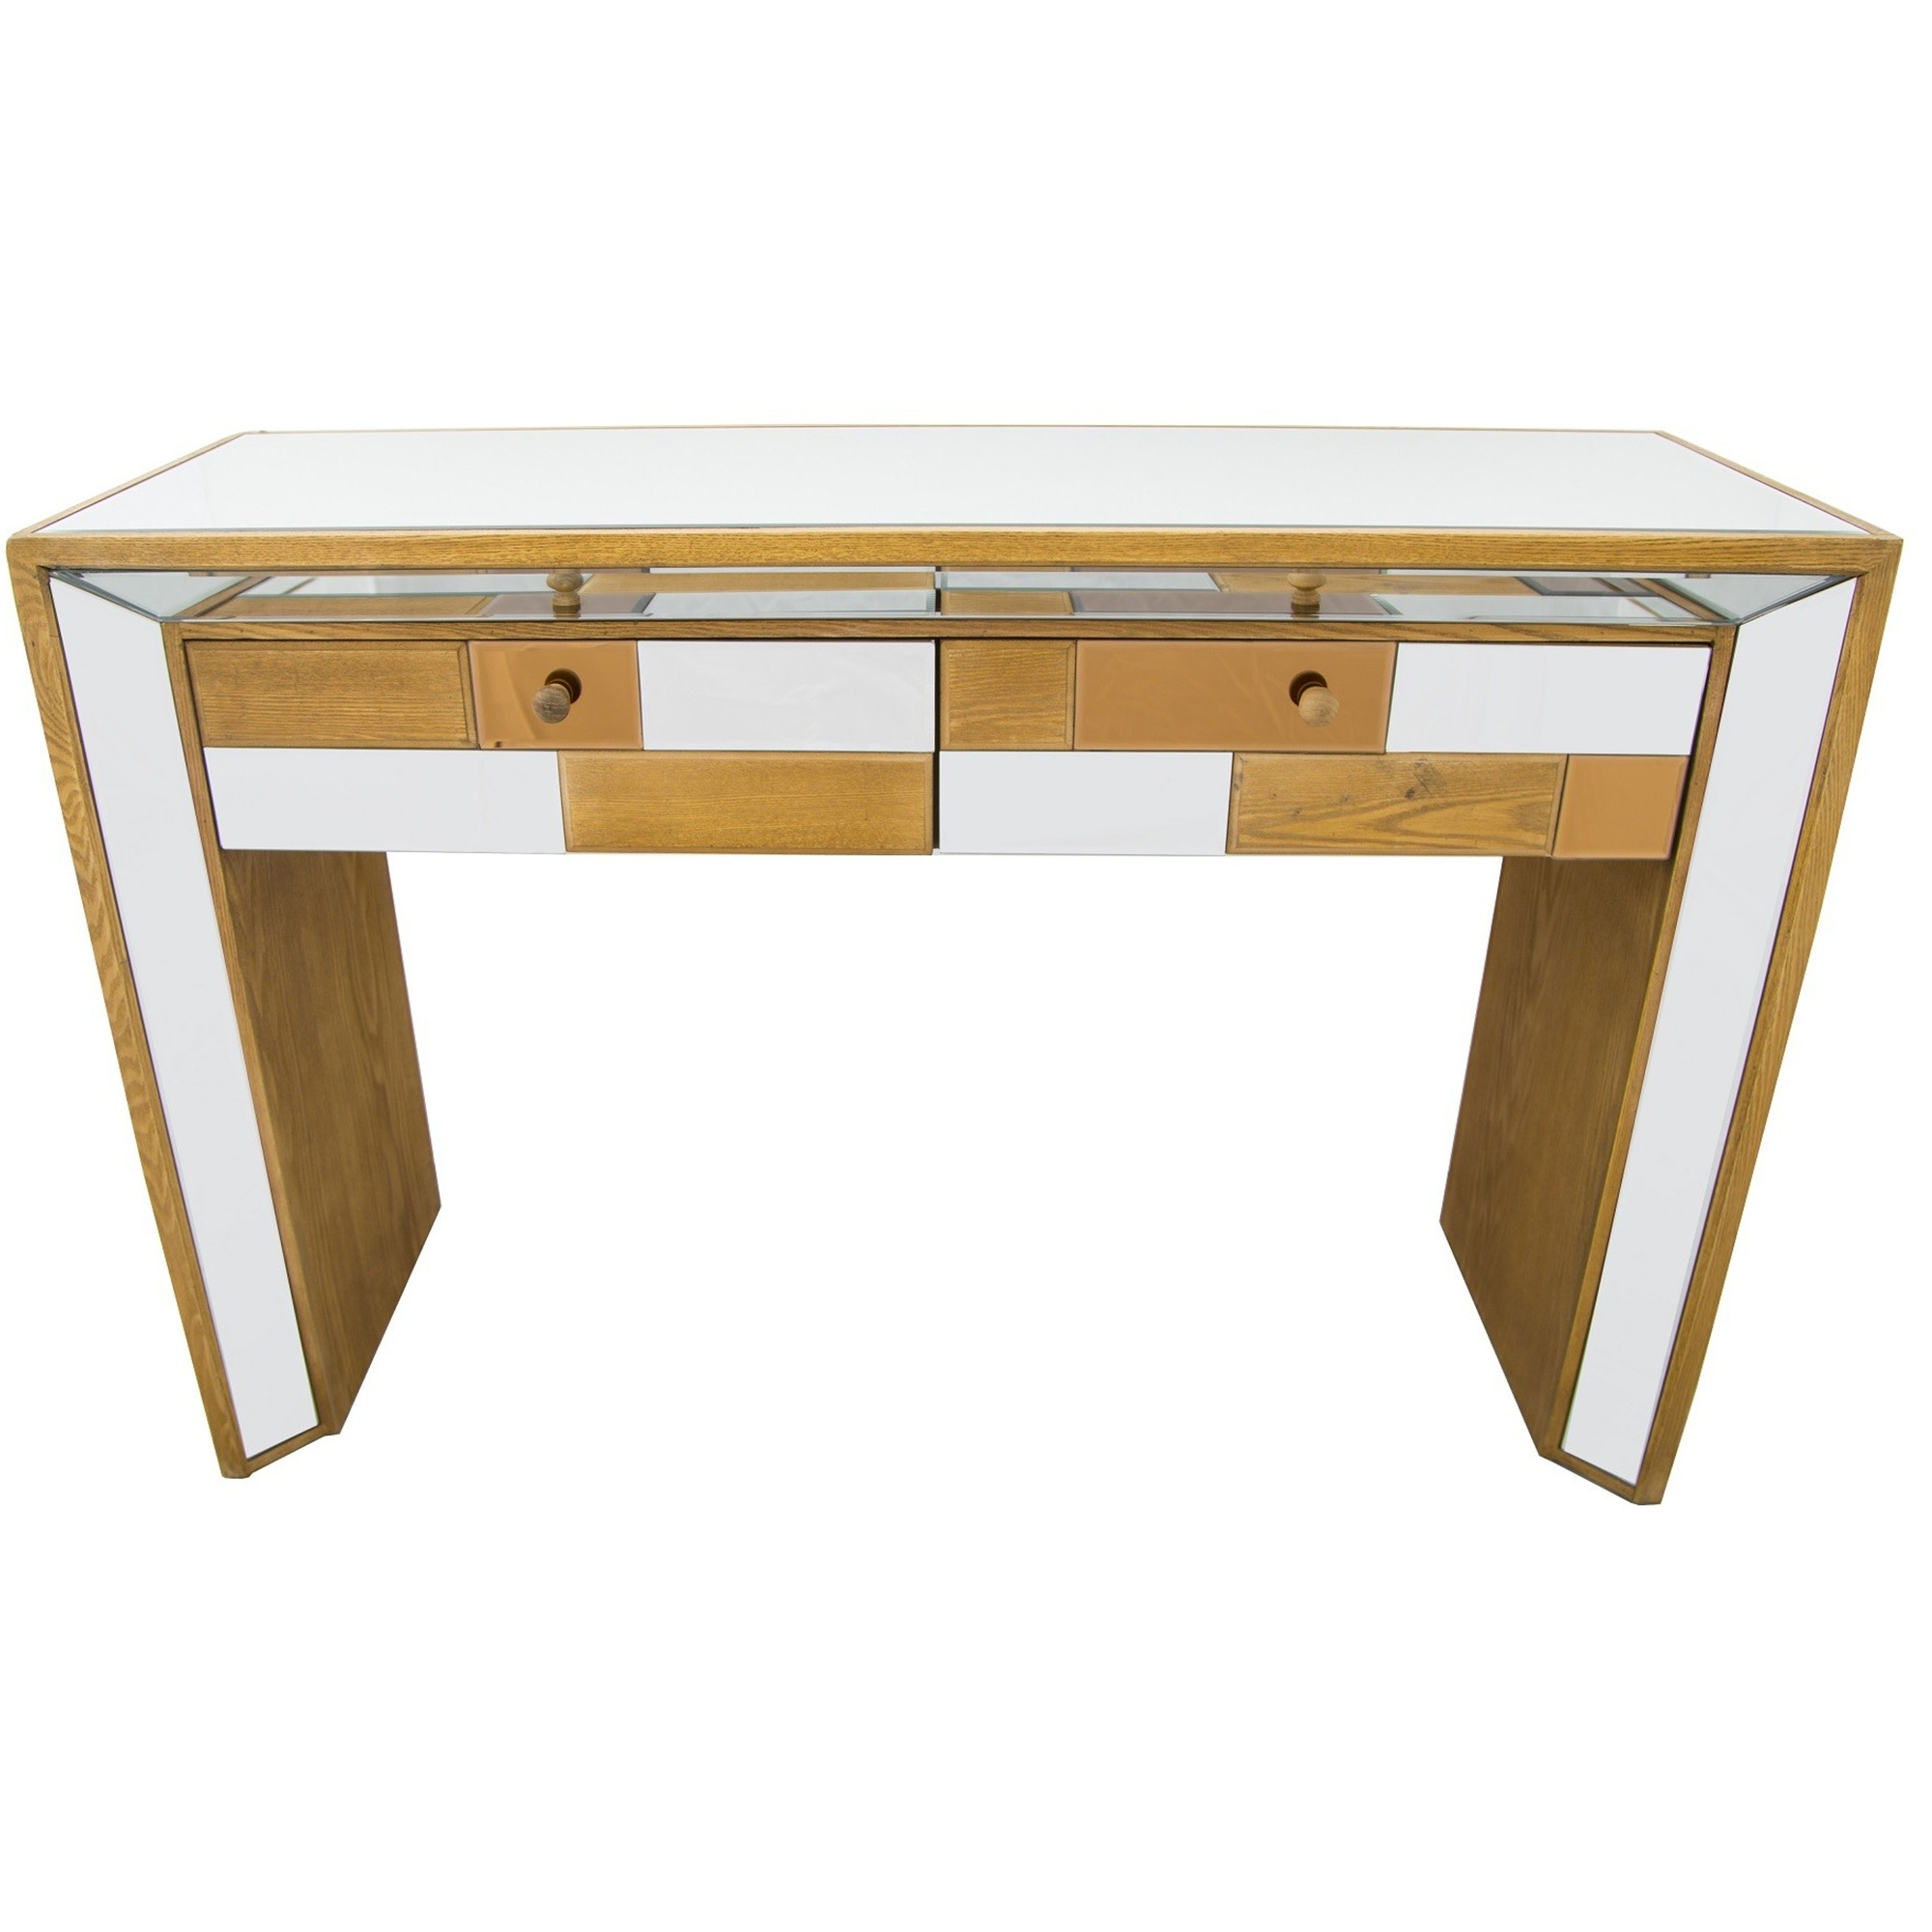 Bronze mirrored console table french furniture from homesdirect 365 uk